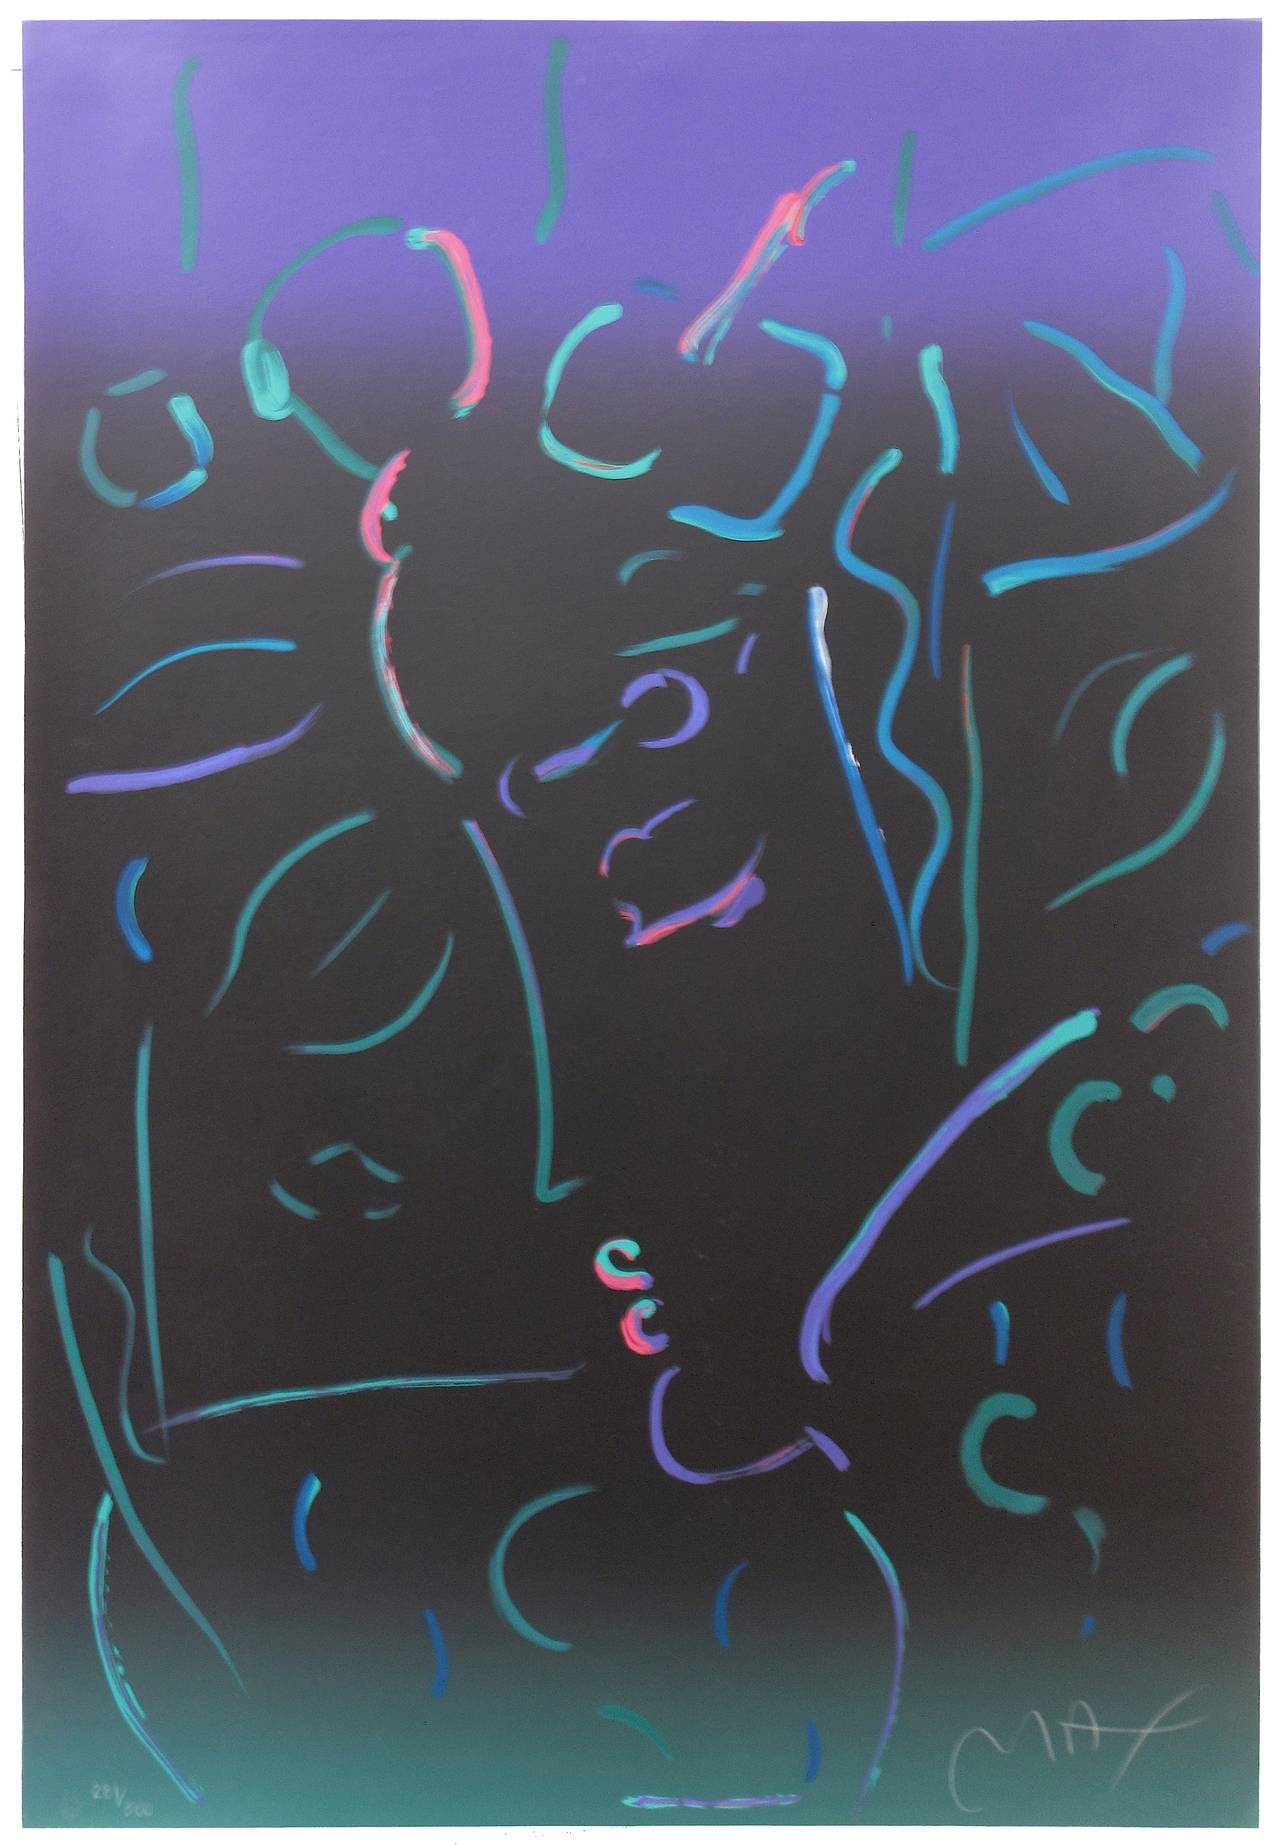 Peter Max - Midnight Profile 1